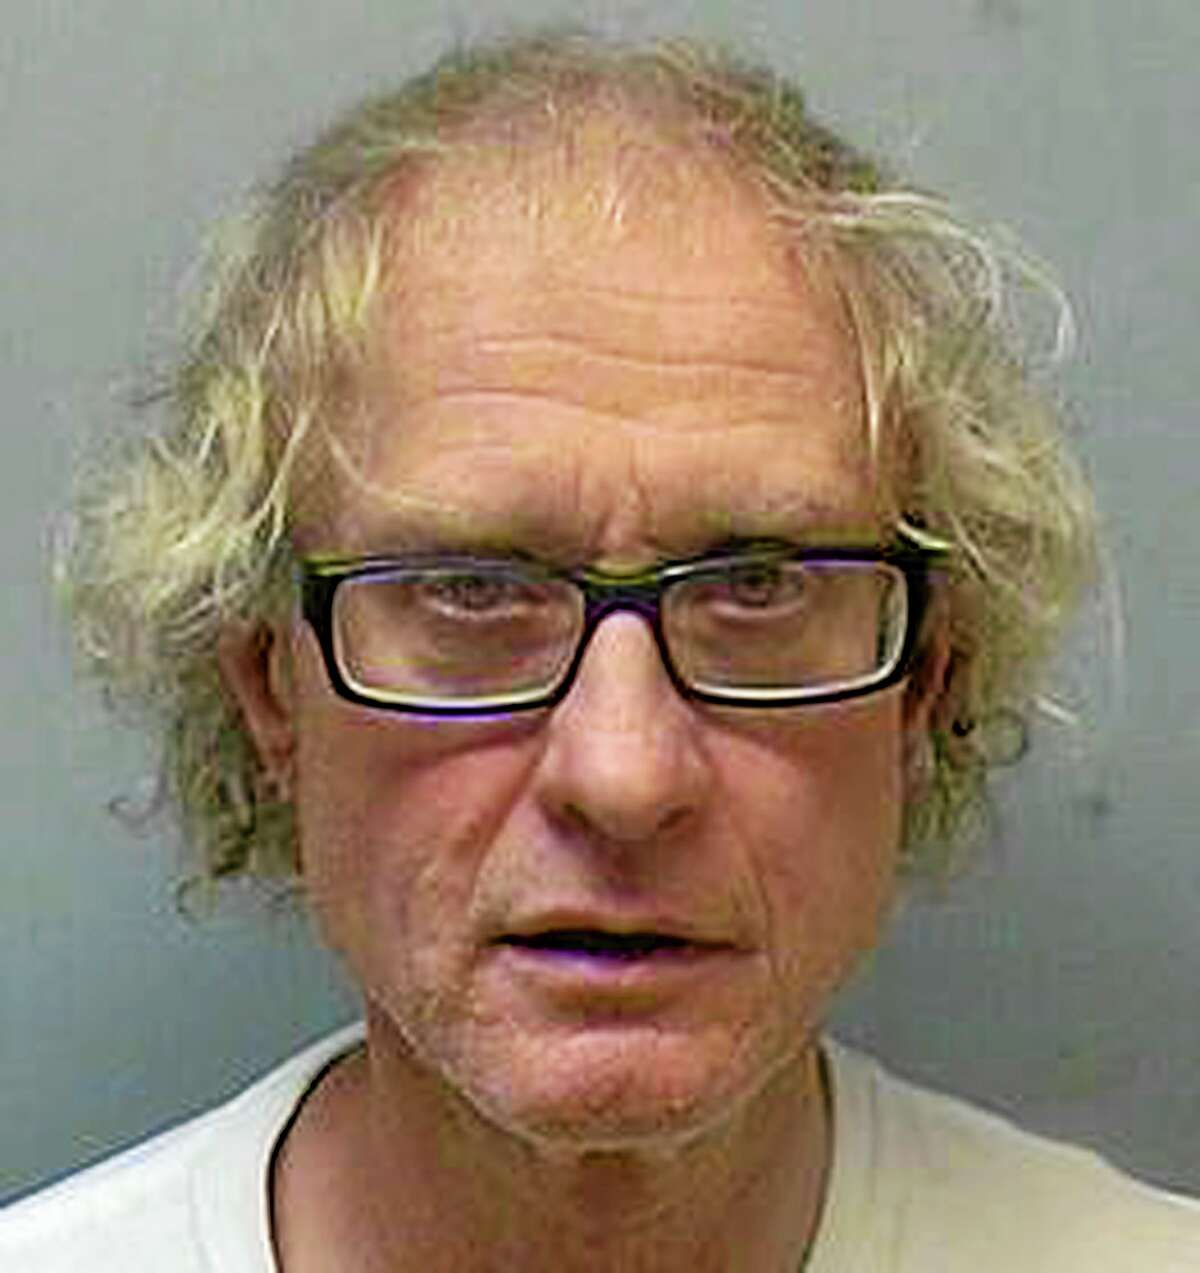 This booking photo released by the Wethersfield Police Department shows John Waszynski, arrested Thursday, May 22, 2014, and charged with murder and cruelty to persons after the decomposed body of his 86-year-old mother, Krystyna Waszynski, was found in their Wethersfield home. (AP Photo/Wethersfield Police Department)